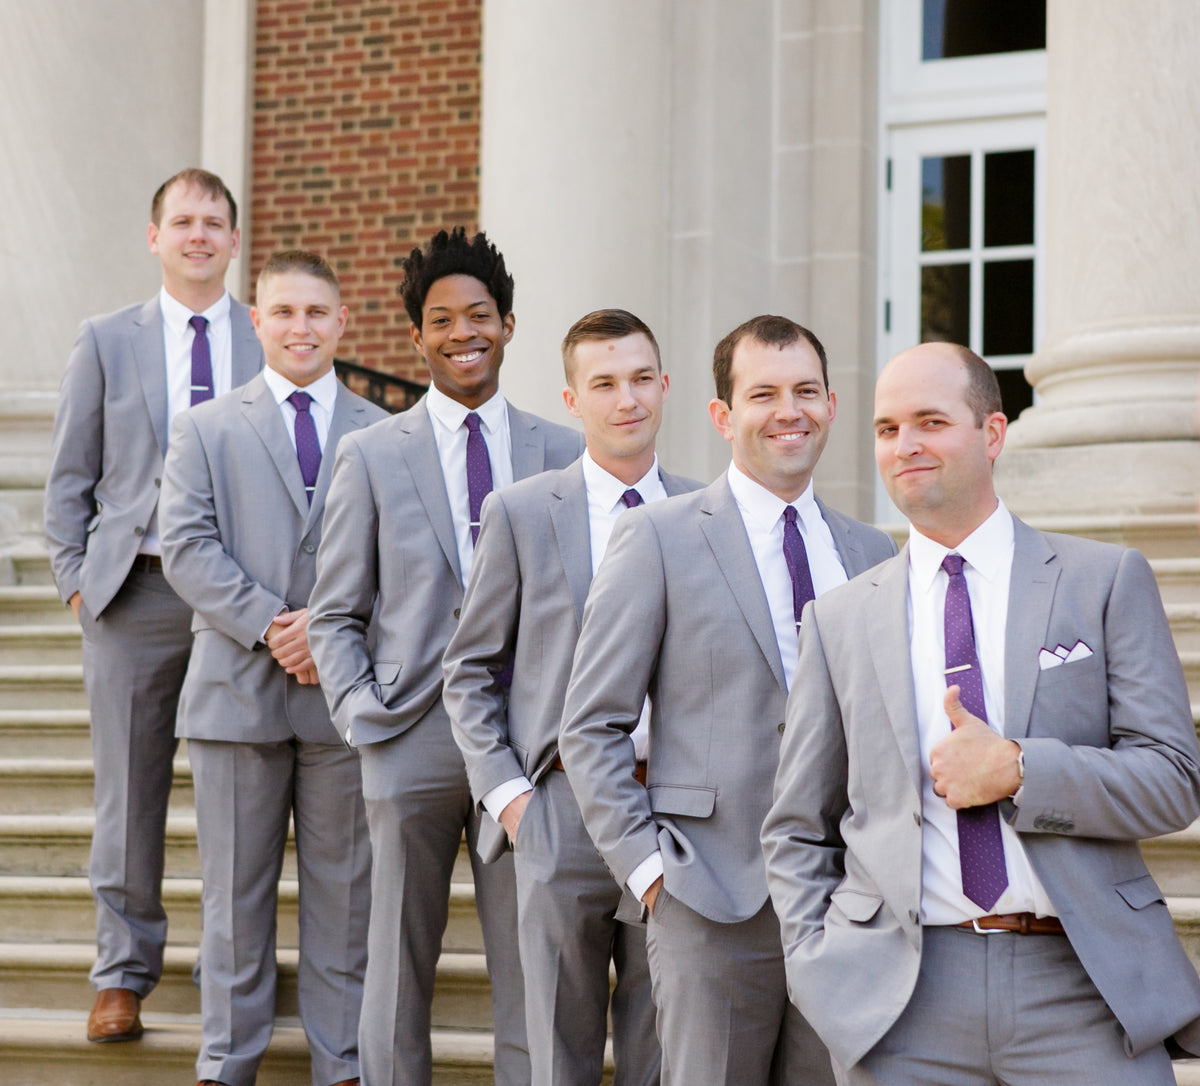 5 Reasons to Pick Grey Groomsmen Suits